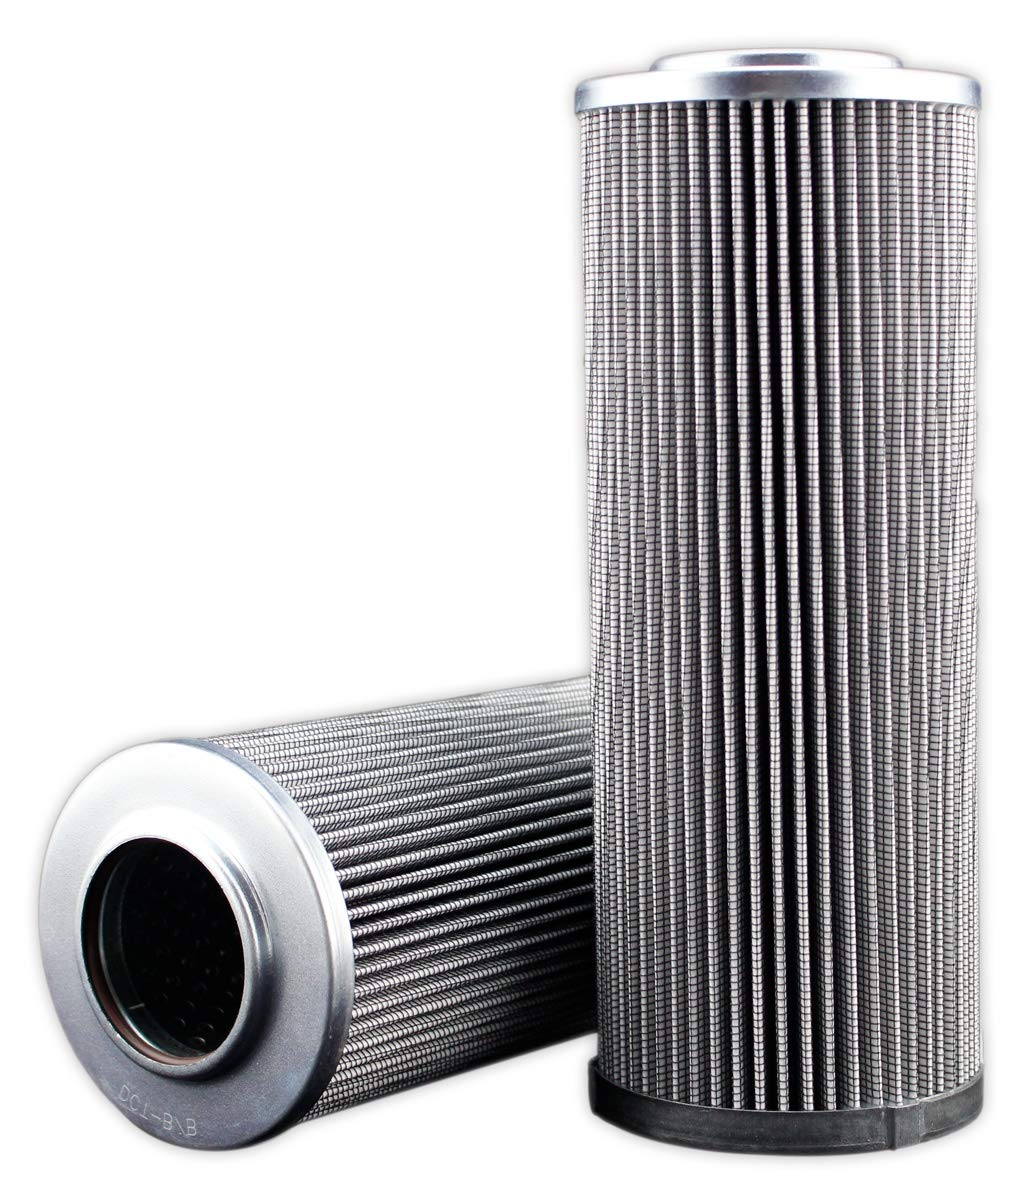 Filter-X XH01778 Heavy Duty Replacement Hydraulic Filter Element from Big Filter 2-Pack